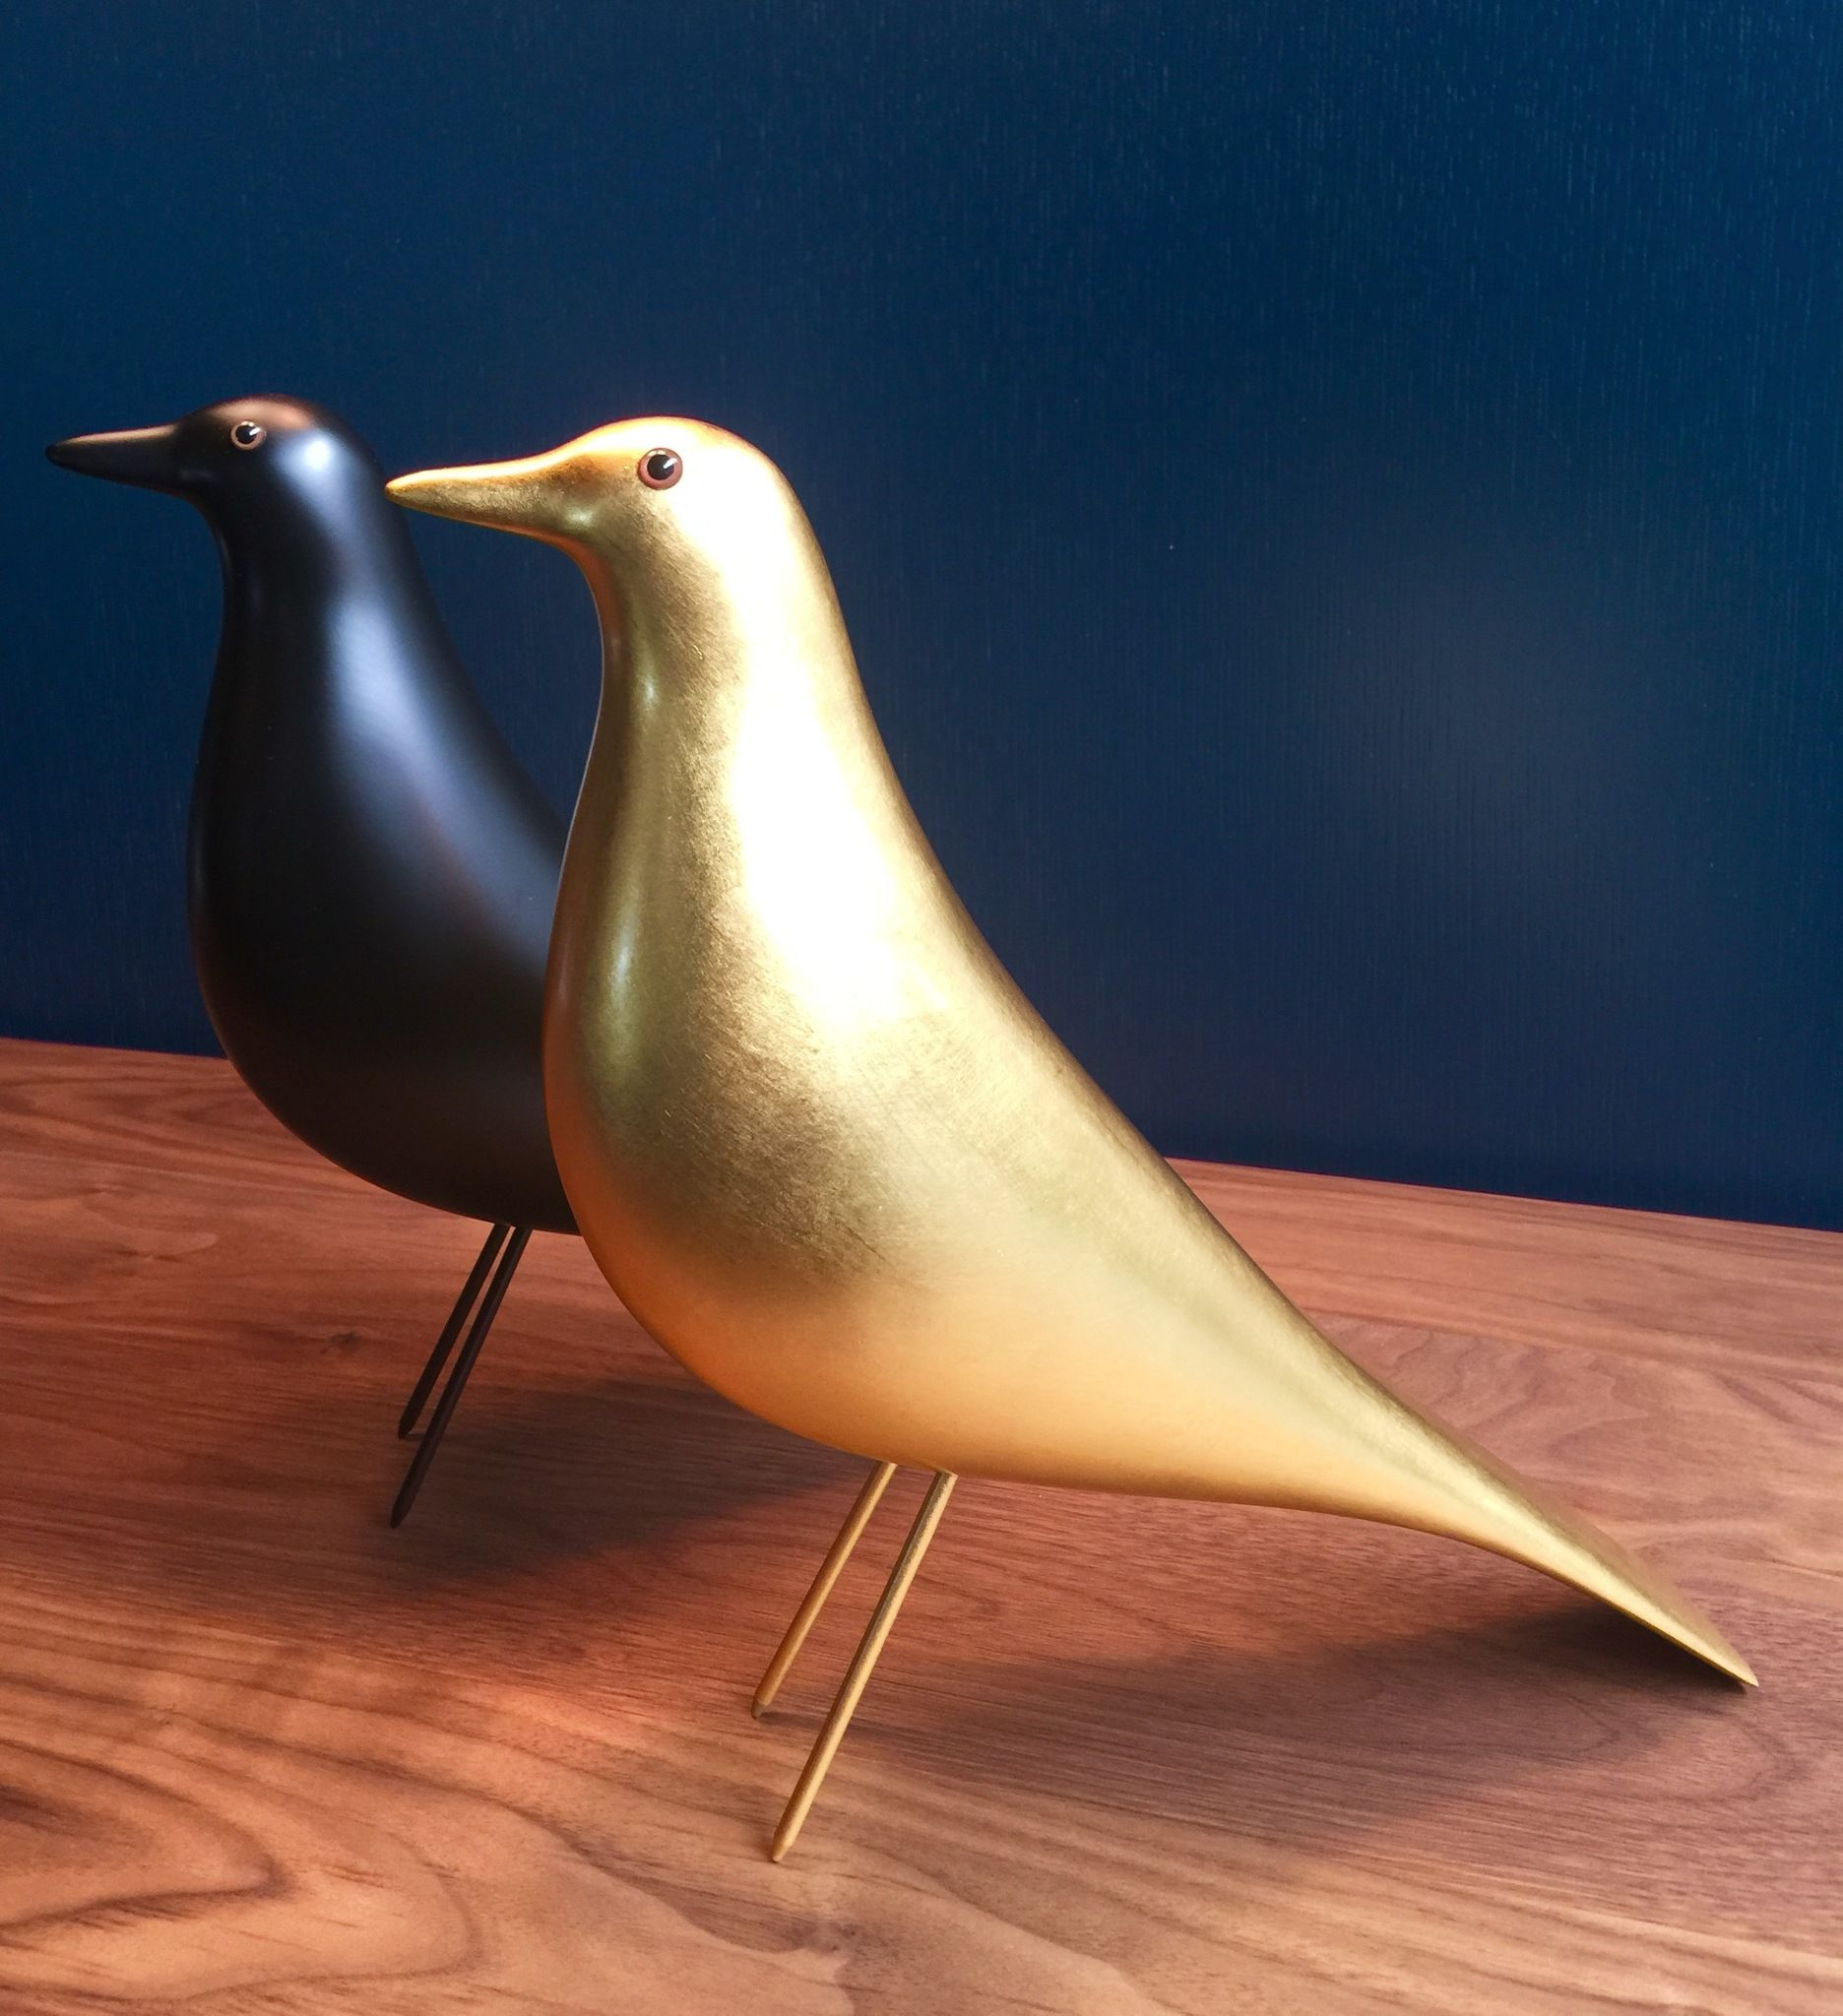 Eames Bird Introducing The Very Special Limited Edition Gold Eames ...